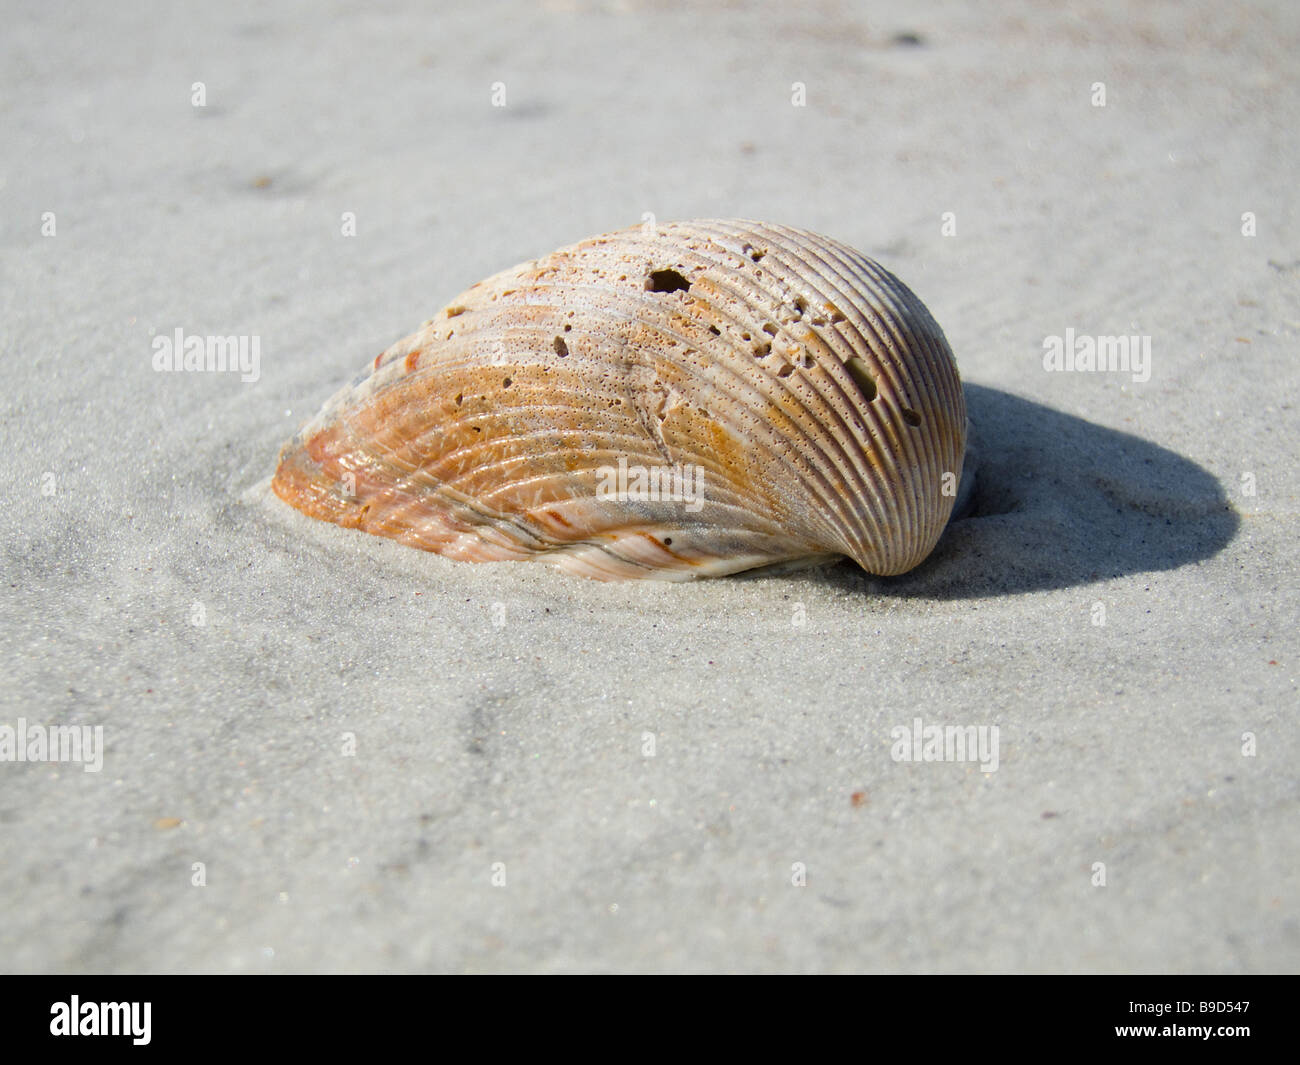 clam shell on beach in sand Stock Photo